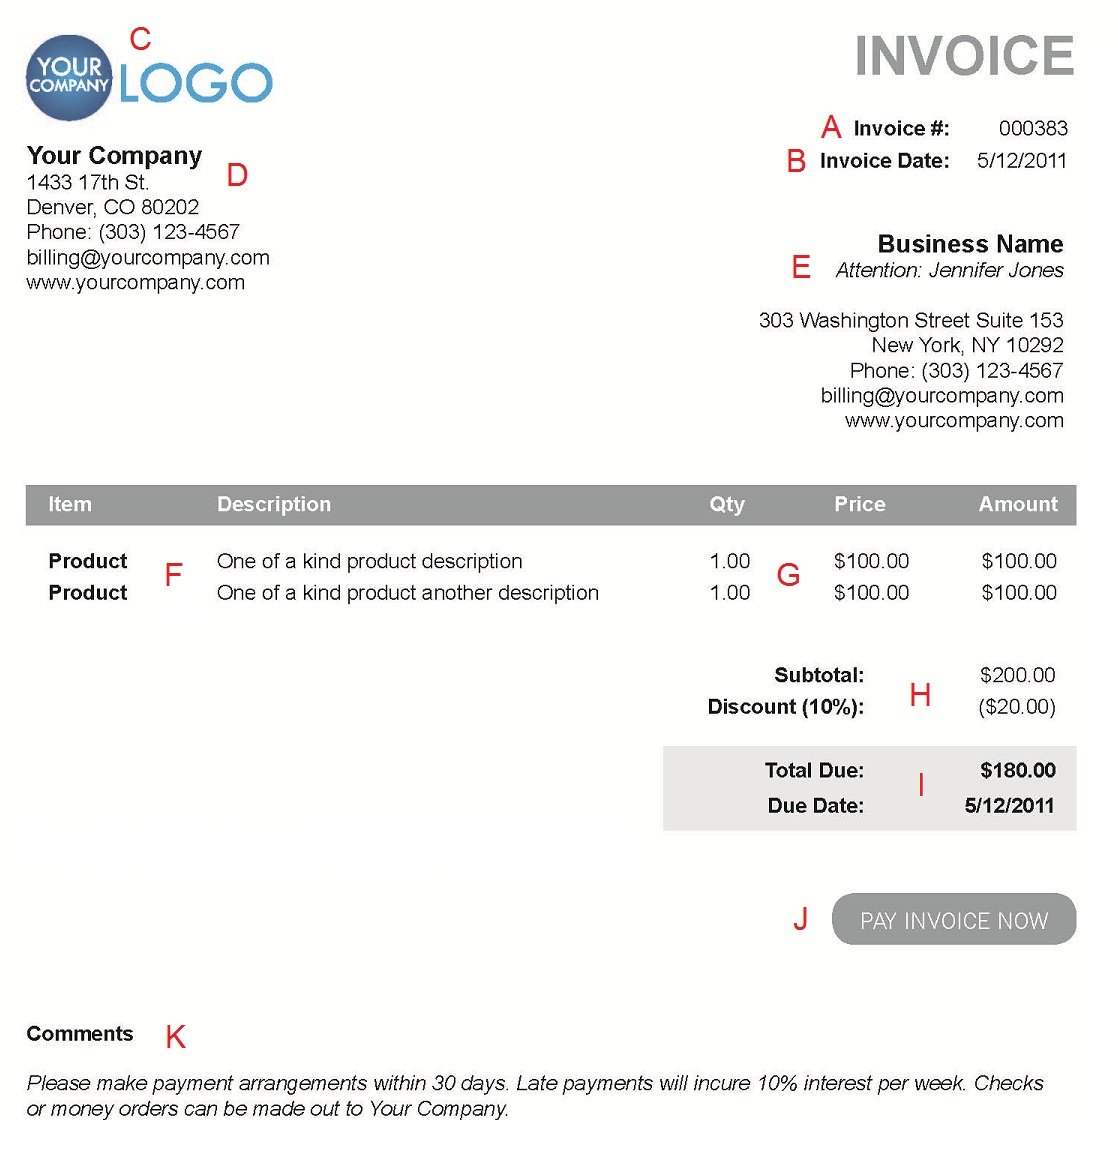 Opposenewapstandardsus  Pretty The  Different Sections Of An Electronic Payment Invoice With Excellent A  With Cool Invoice Loan Also Audi Q Invoice Price In Addition Invoice Prices For Cars And Sap Invoicing As Well As How To Make Invoices In Excel Additionally Invoice Template For Consulting Services From Paysimplecom With Opposenewapstandardsus  Excellent The  Different Sections Of An Electronic Payment Invoice With Cool A  And Pretty Invoice Loan Also Audi Q Invoice Price In Addition Invoice Prices For Cars From Paysimplecom